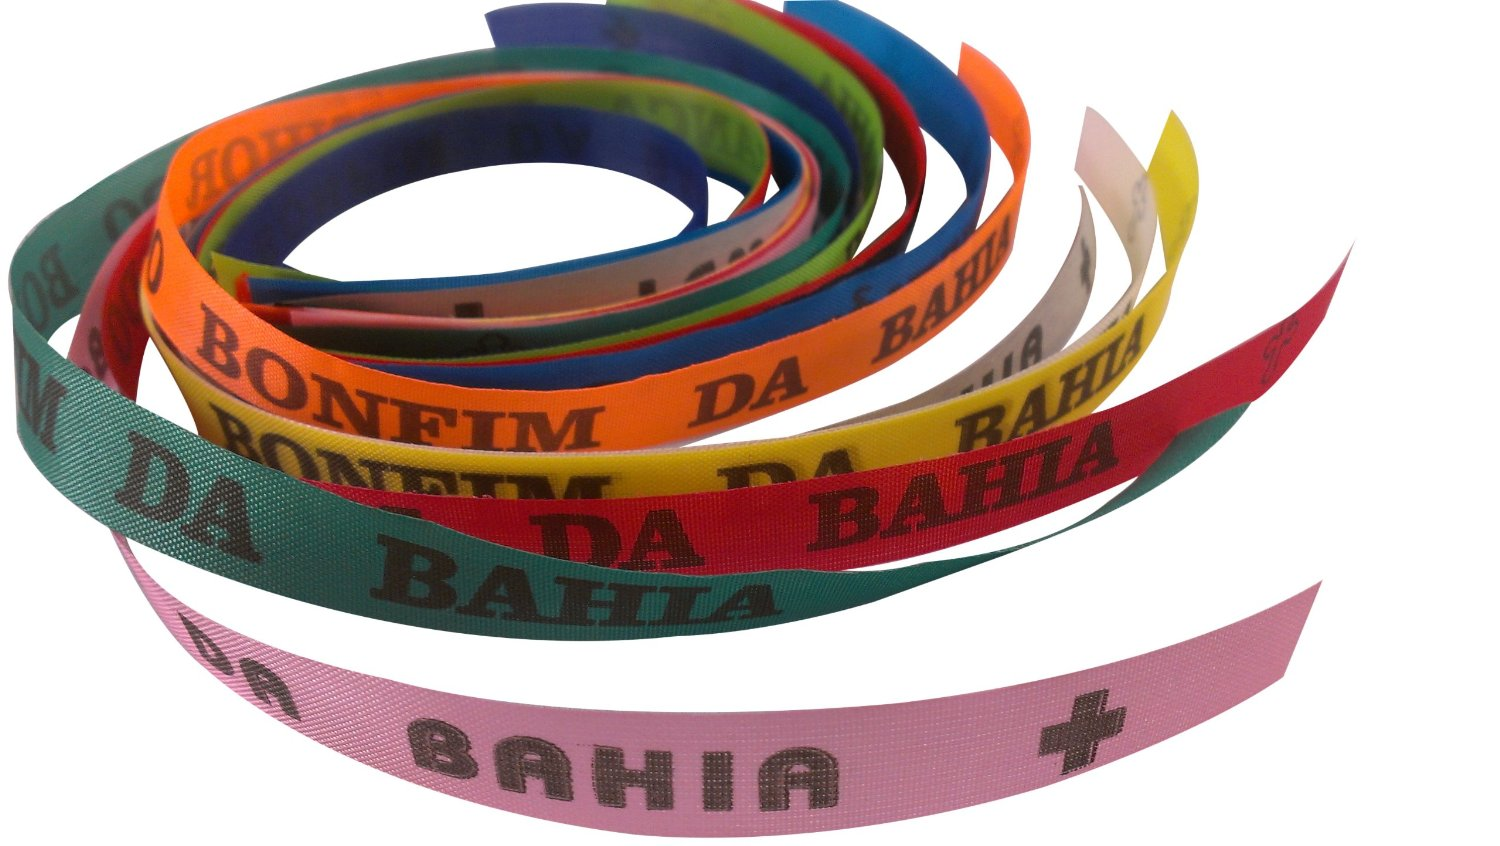 Bahia Bands Color Meaning